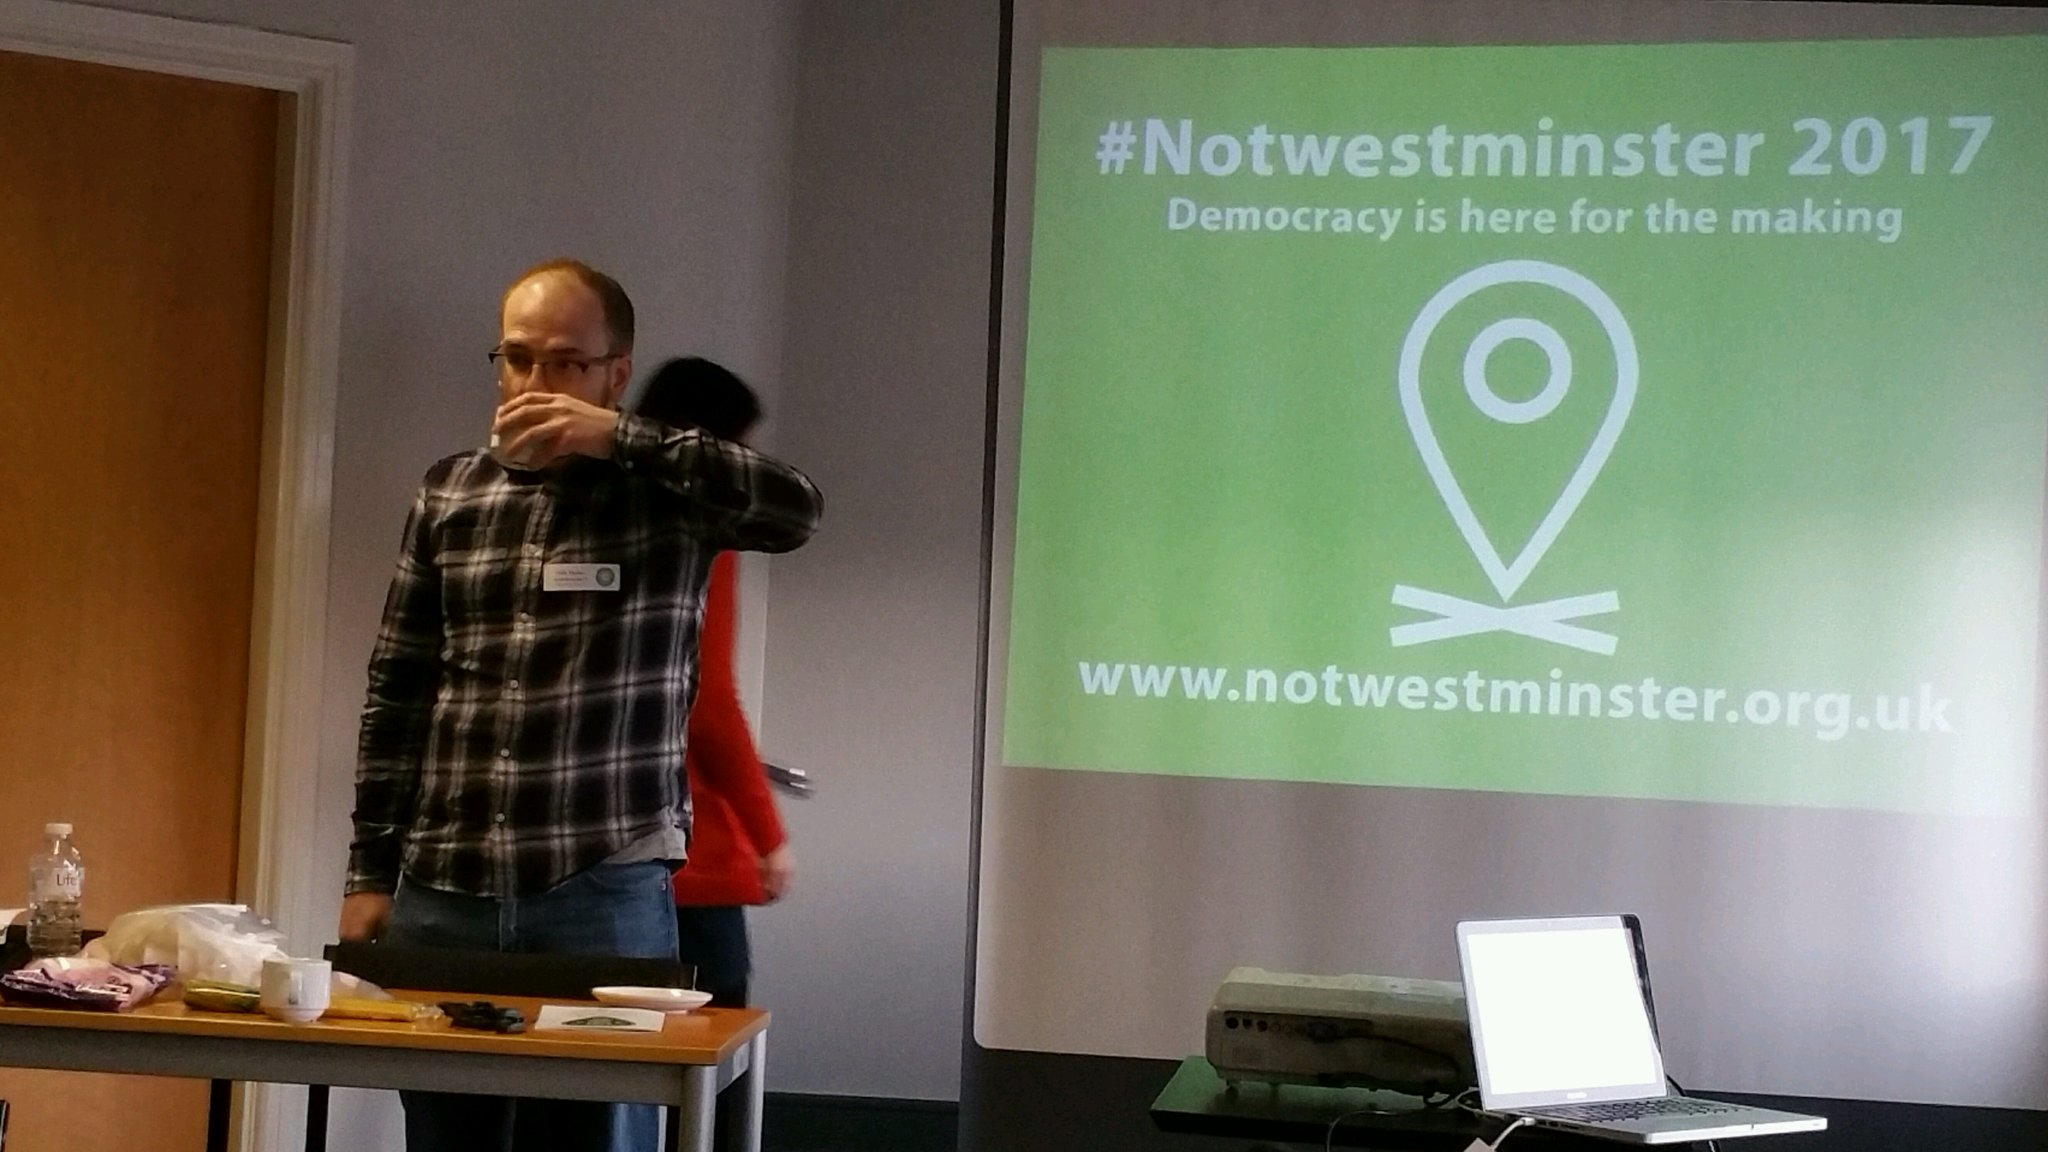 All ready for #notwestminster (@ The Media Centre in Huddersfield, UK) https://t.co/2co2hxwLgy https://t.co/vEKHPcfaAJ